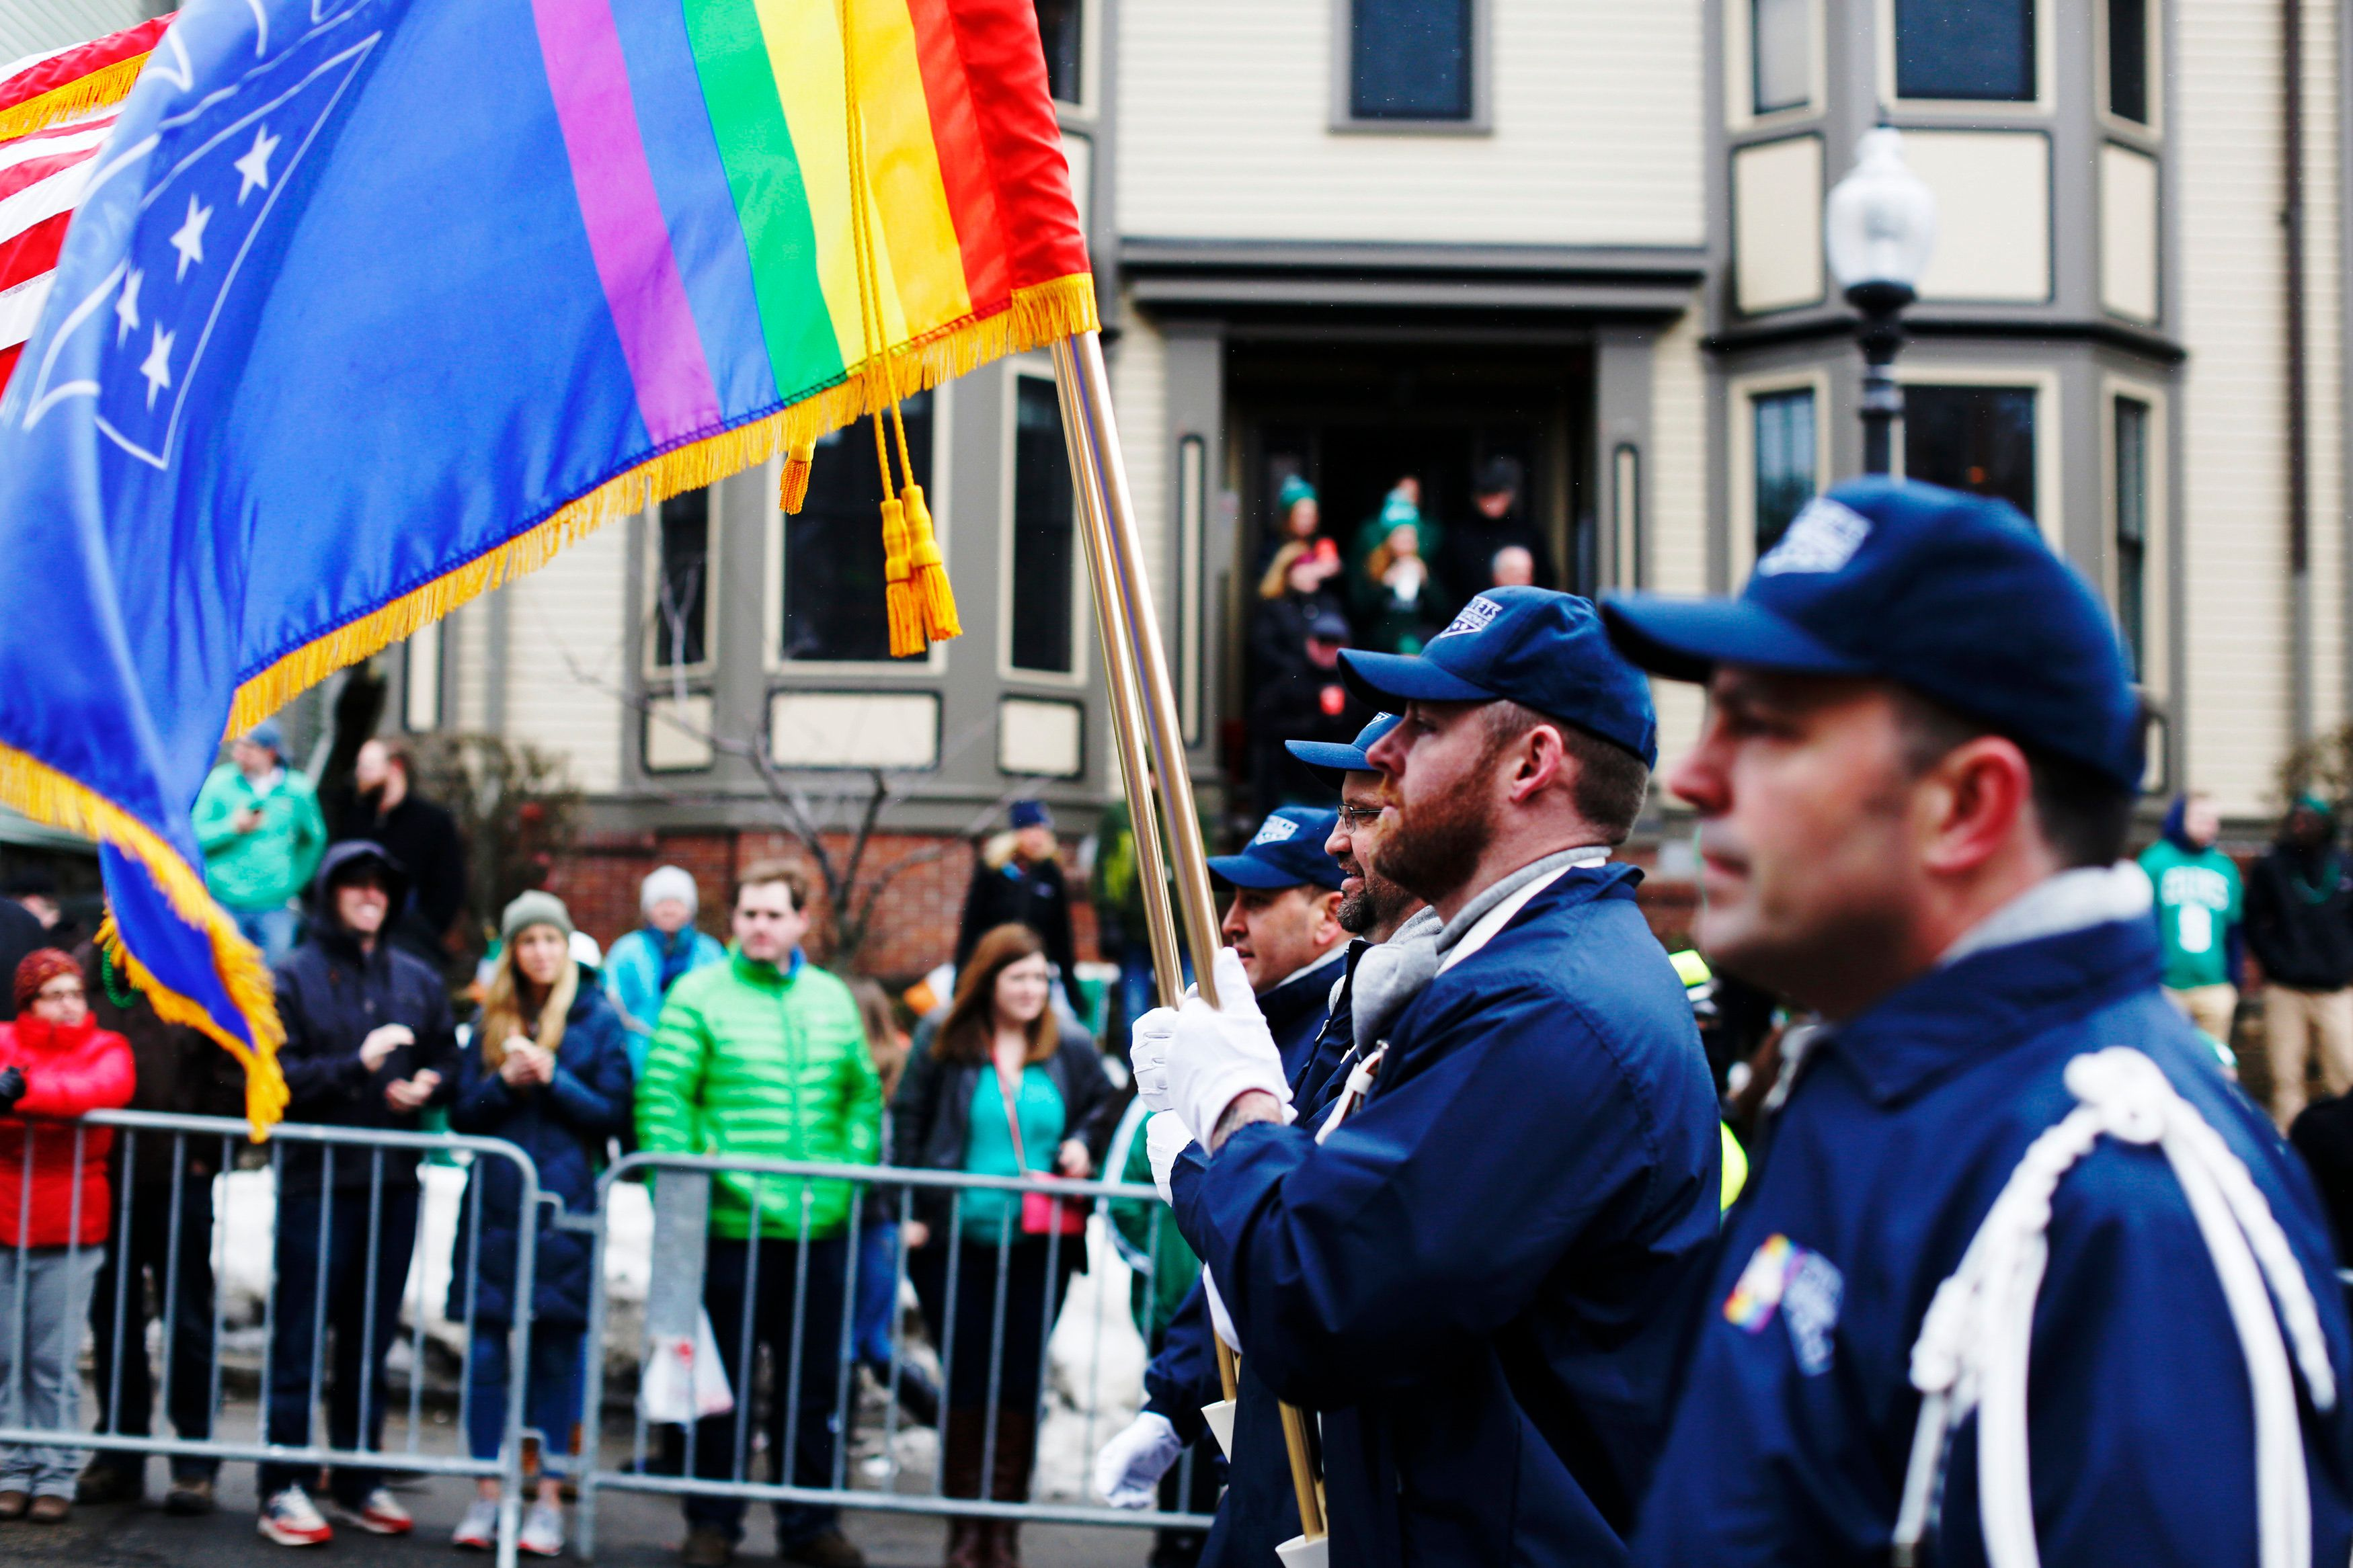 The color guard for LGBT veterans group OutVets marches down Broadway during the St. Patrick's Day Parade in South Boston, Massachusetts  March 15, 2015. For the first time in the 114-year history of Boston's St. Patrick's Day parade, gay rights activists marched openly on Sunday under rainbow banners in the city's annual celebration of its Irish heritage, after organizers lifted a longtime ban. Two groups, Boston Pride and OutVets, were among dozens of contingents taking part in the parade through the center of South Boston, once an insular Irish-American neighborhood near downtown that has undergone gentrification in recent years. REUTERS/Dominick Reuter (UNITED STATES - Tags: SOCIETY ANNIVERSARY)